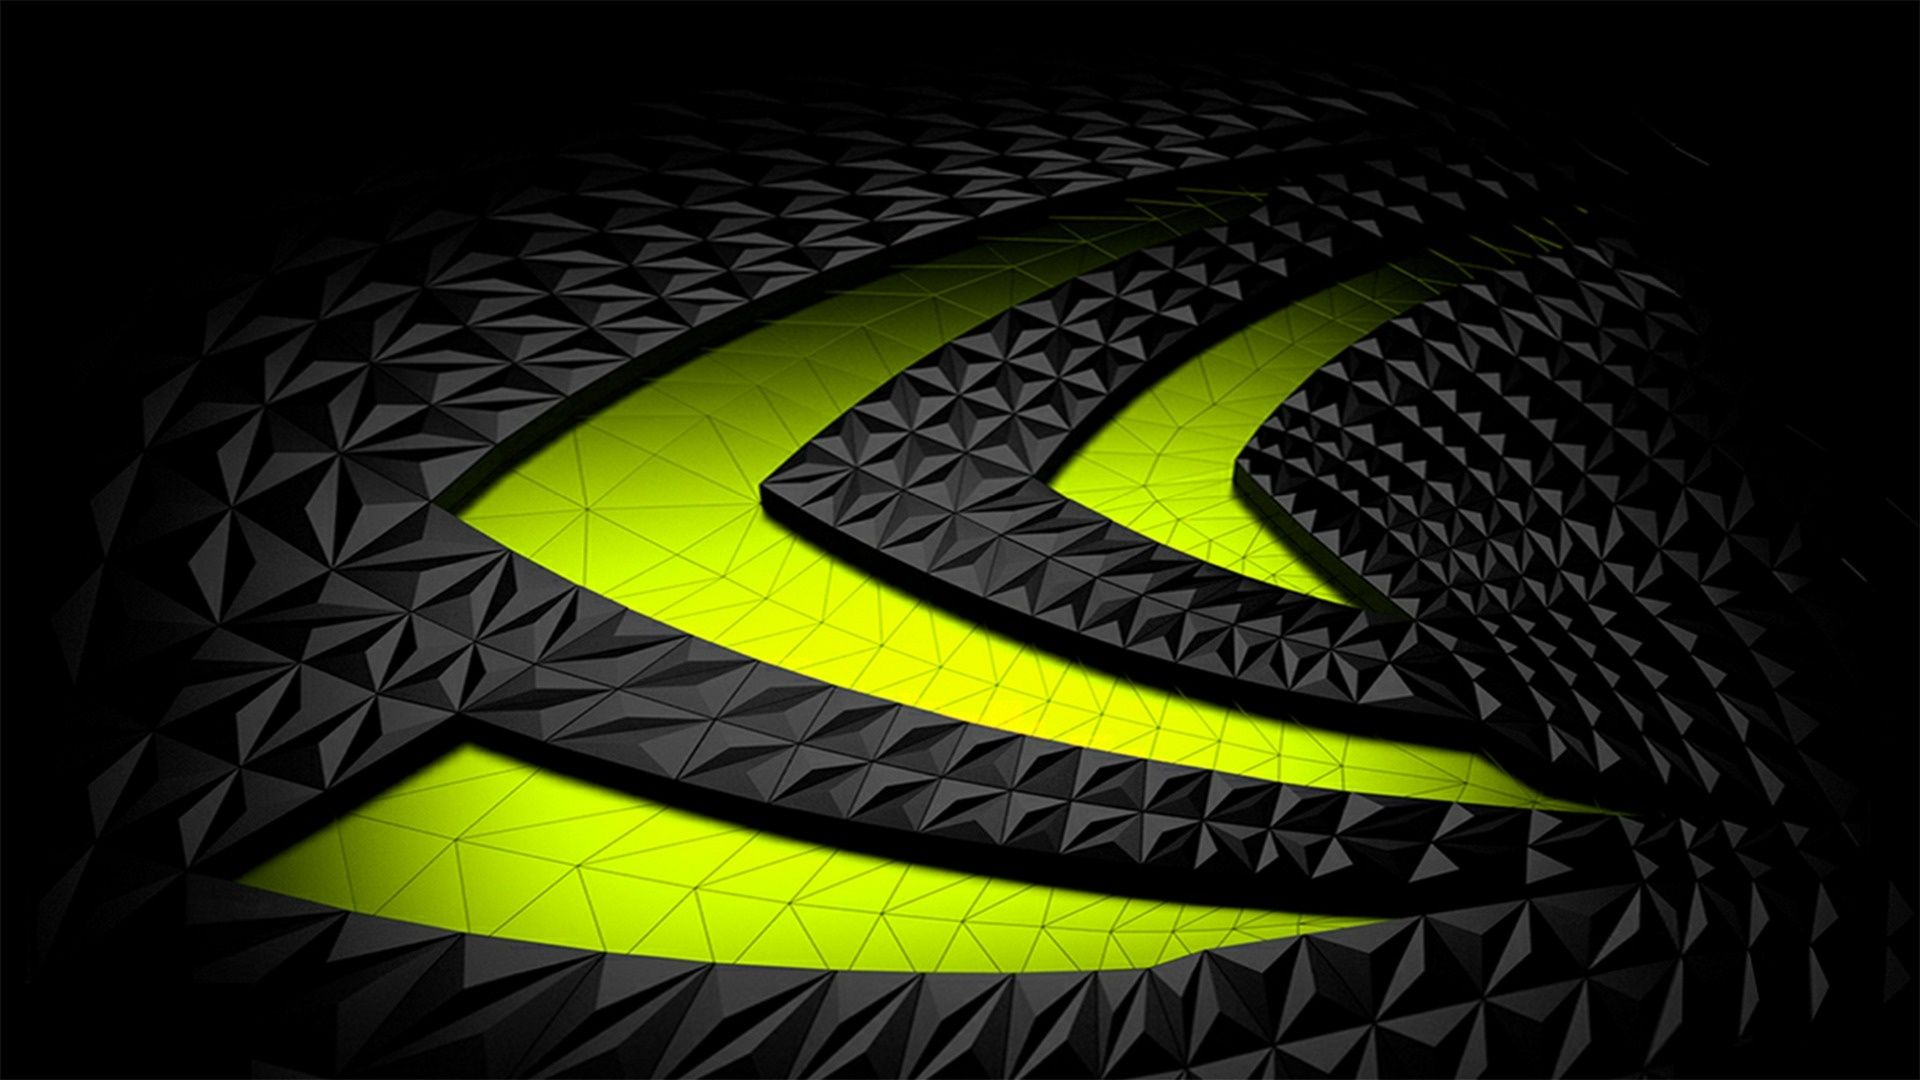 nvidia-geforce-wallpaper-picture